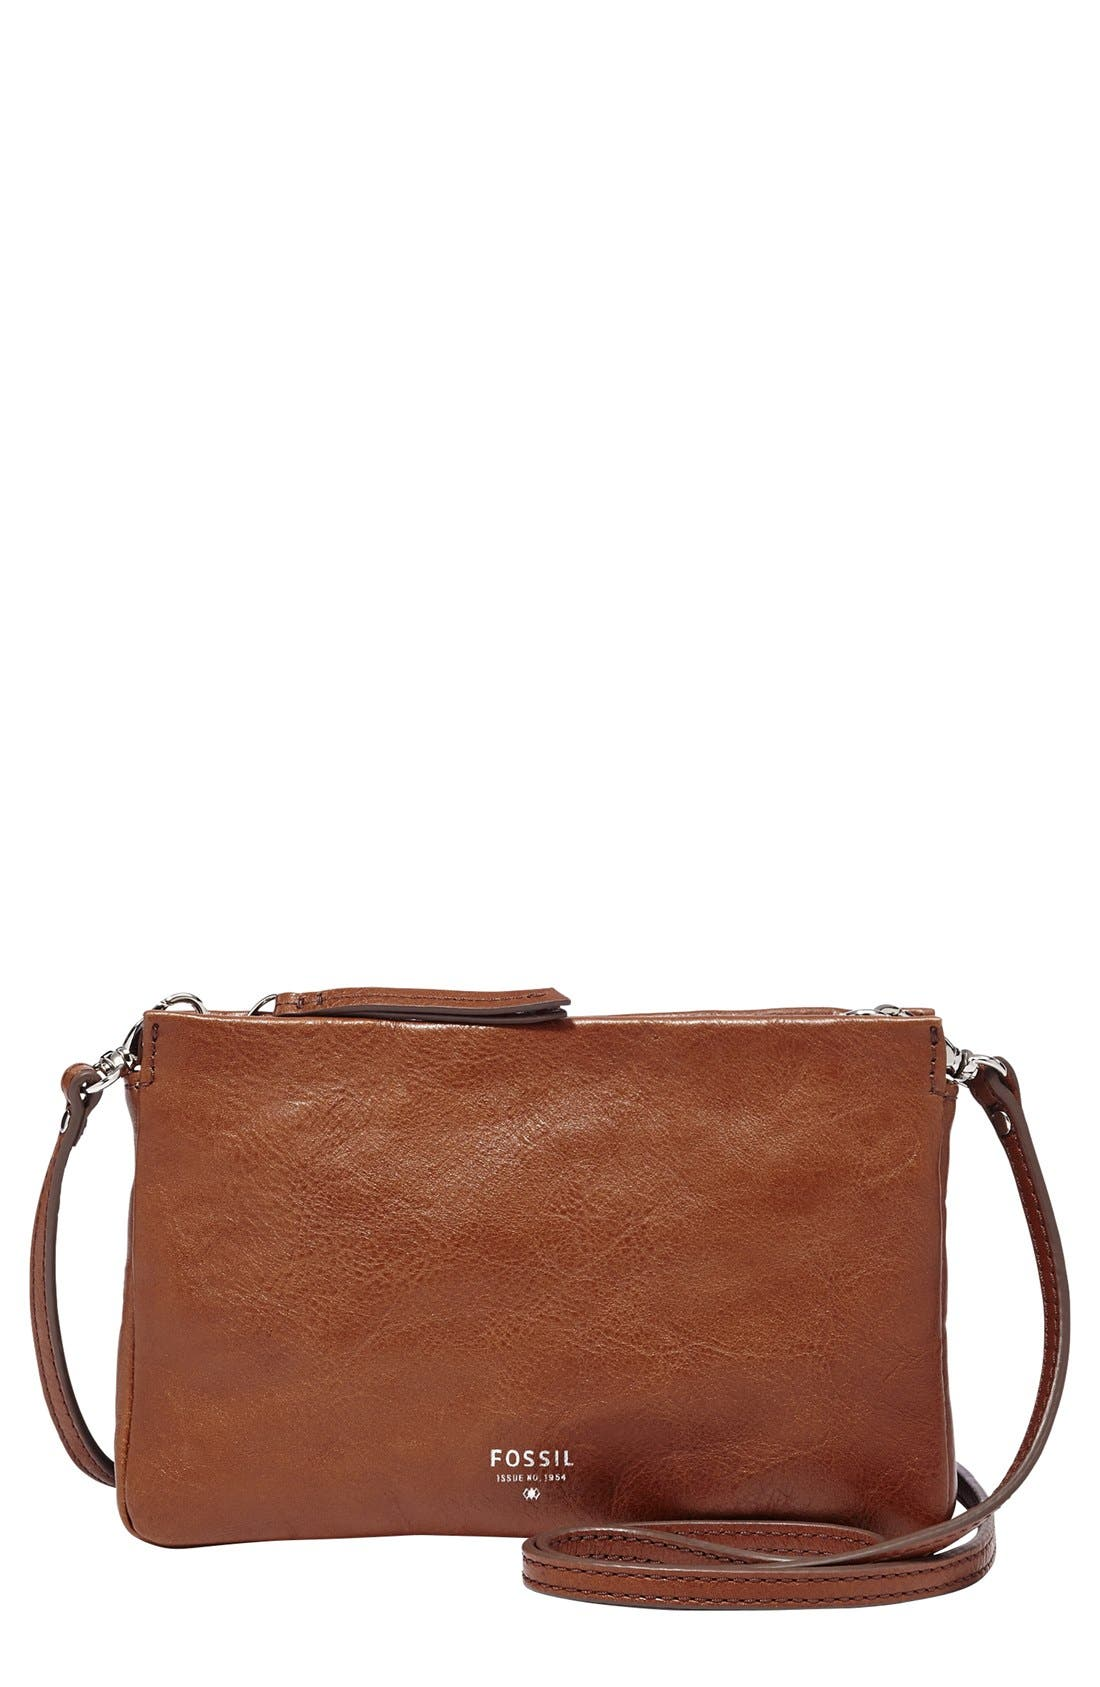 'Mini' Crossbody Bag,                             Main thumbnail 2, color,